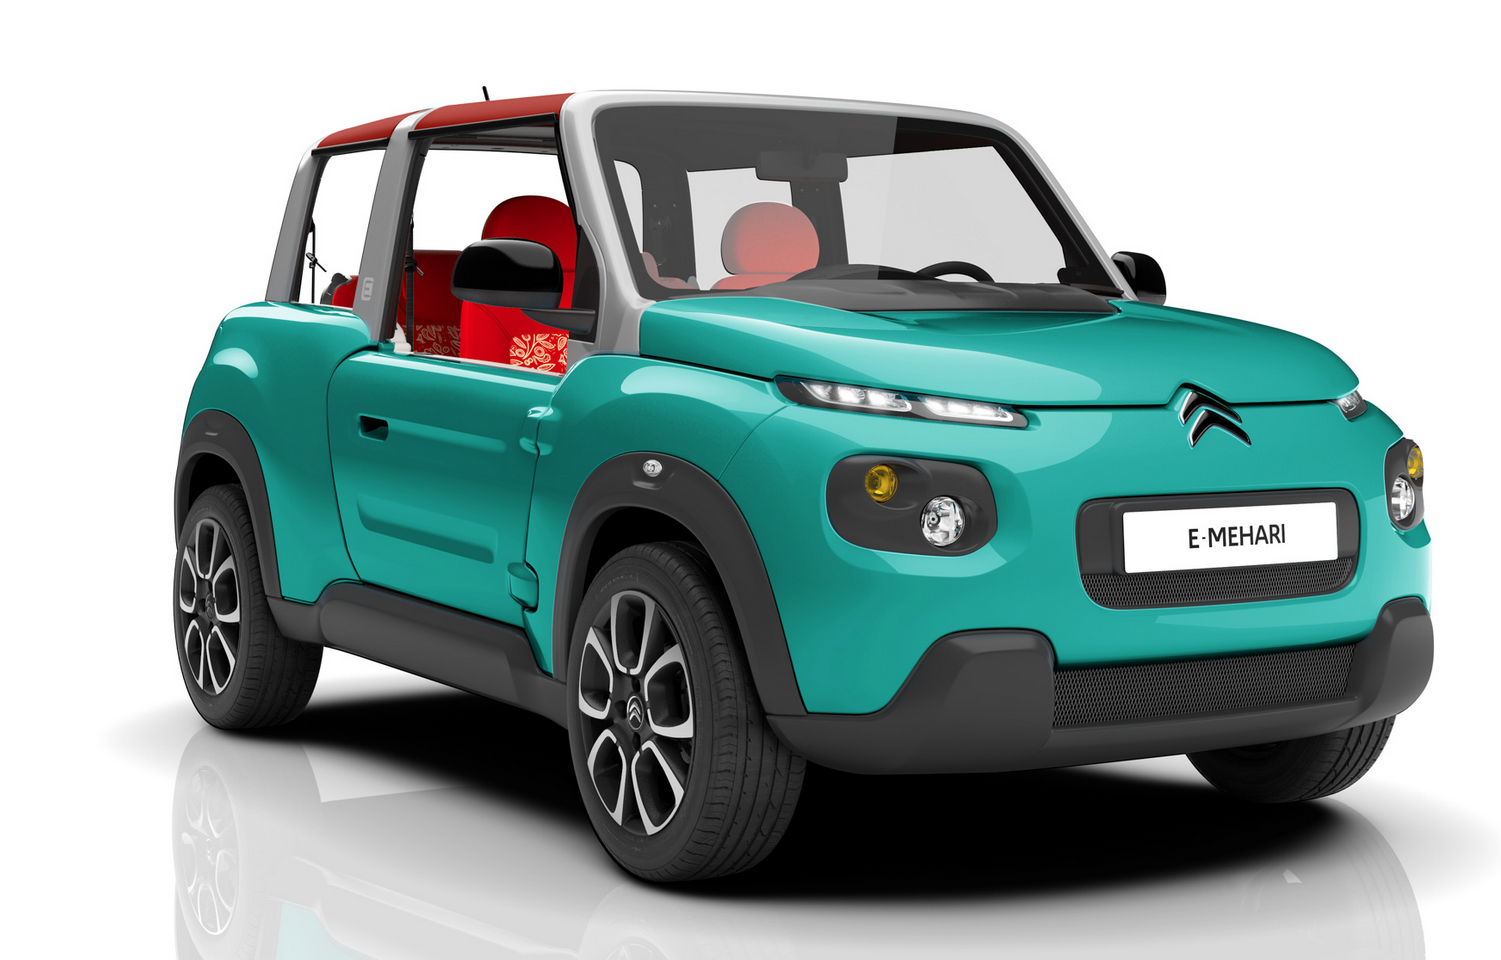 Citroen E-Mehari, Peugeot Returns